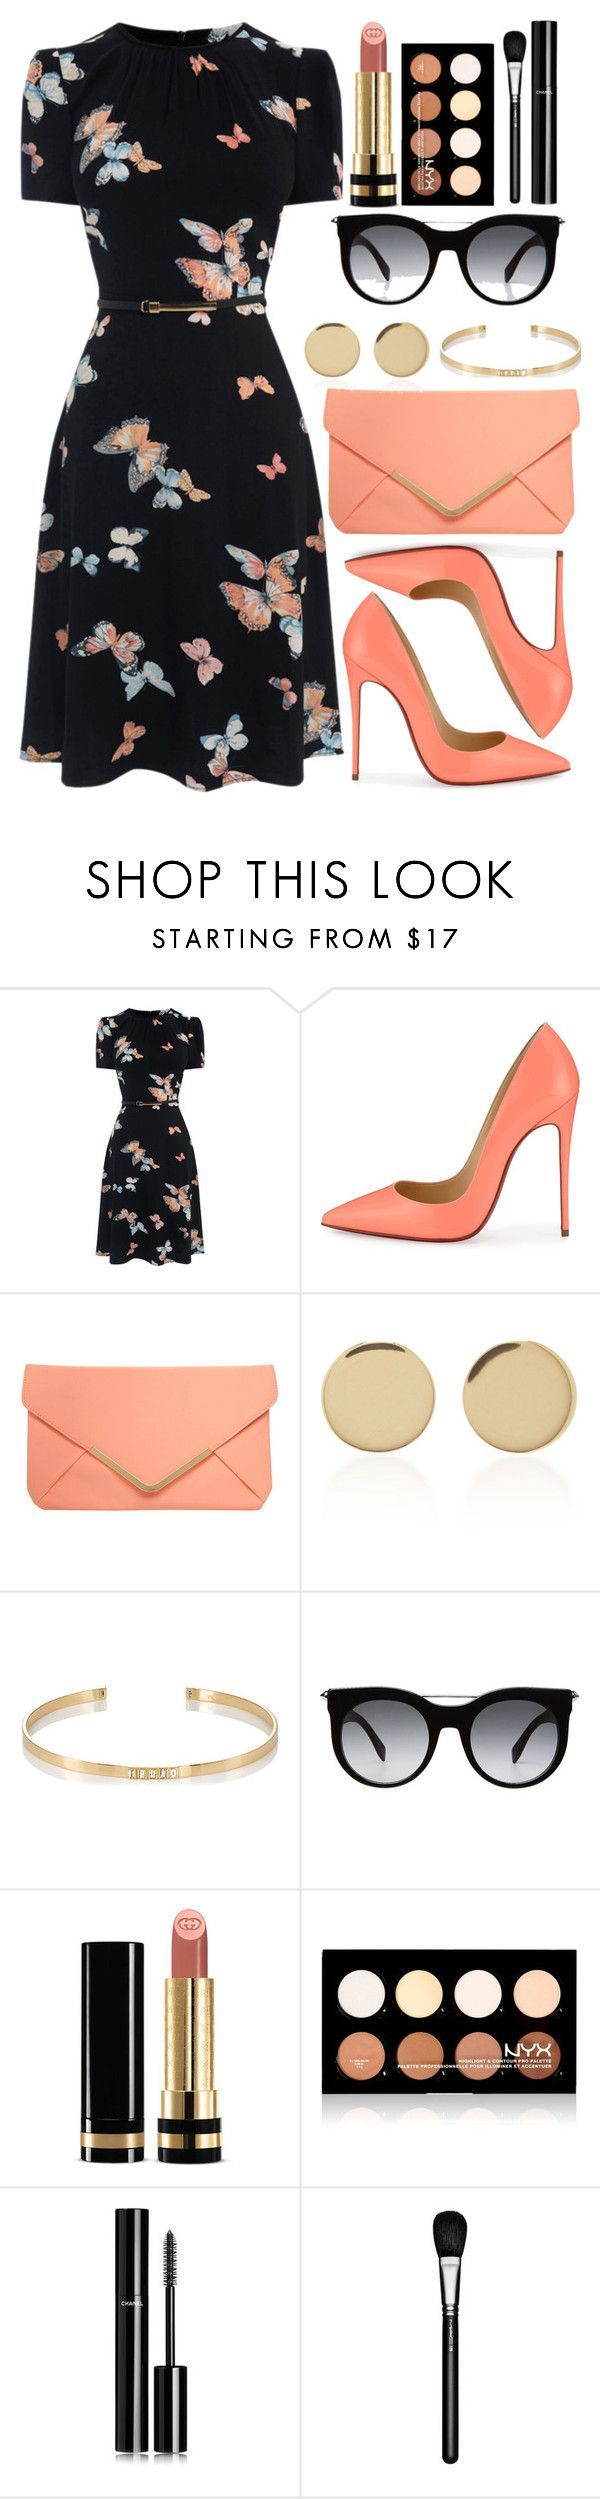 Untitled #4374 by natalyasidunova ❤ liked on Polyvore featuring Christian Louboutin, Dorothy Perkins, Magdalena Frackowiak, Ileana Makri, Alexander McQueen, Gucci, NYX, Chanel and MAC Cosmetics #christianlouboutinflats